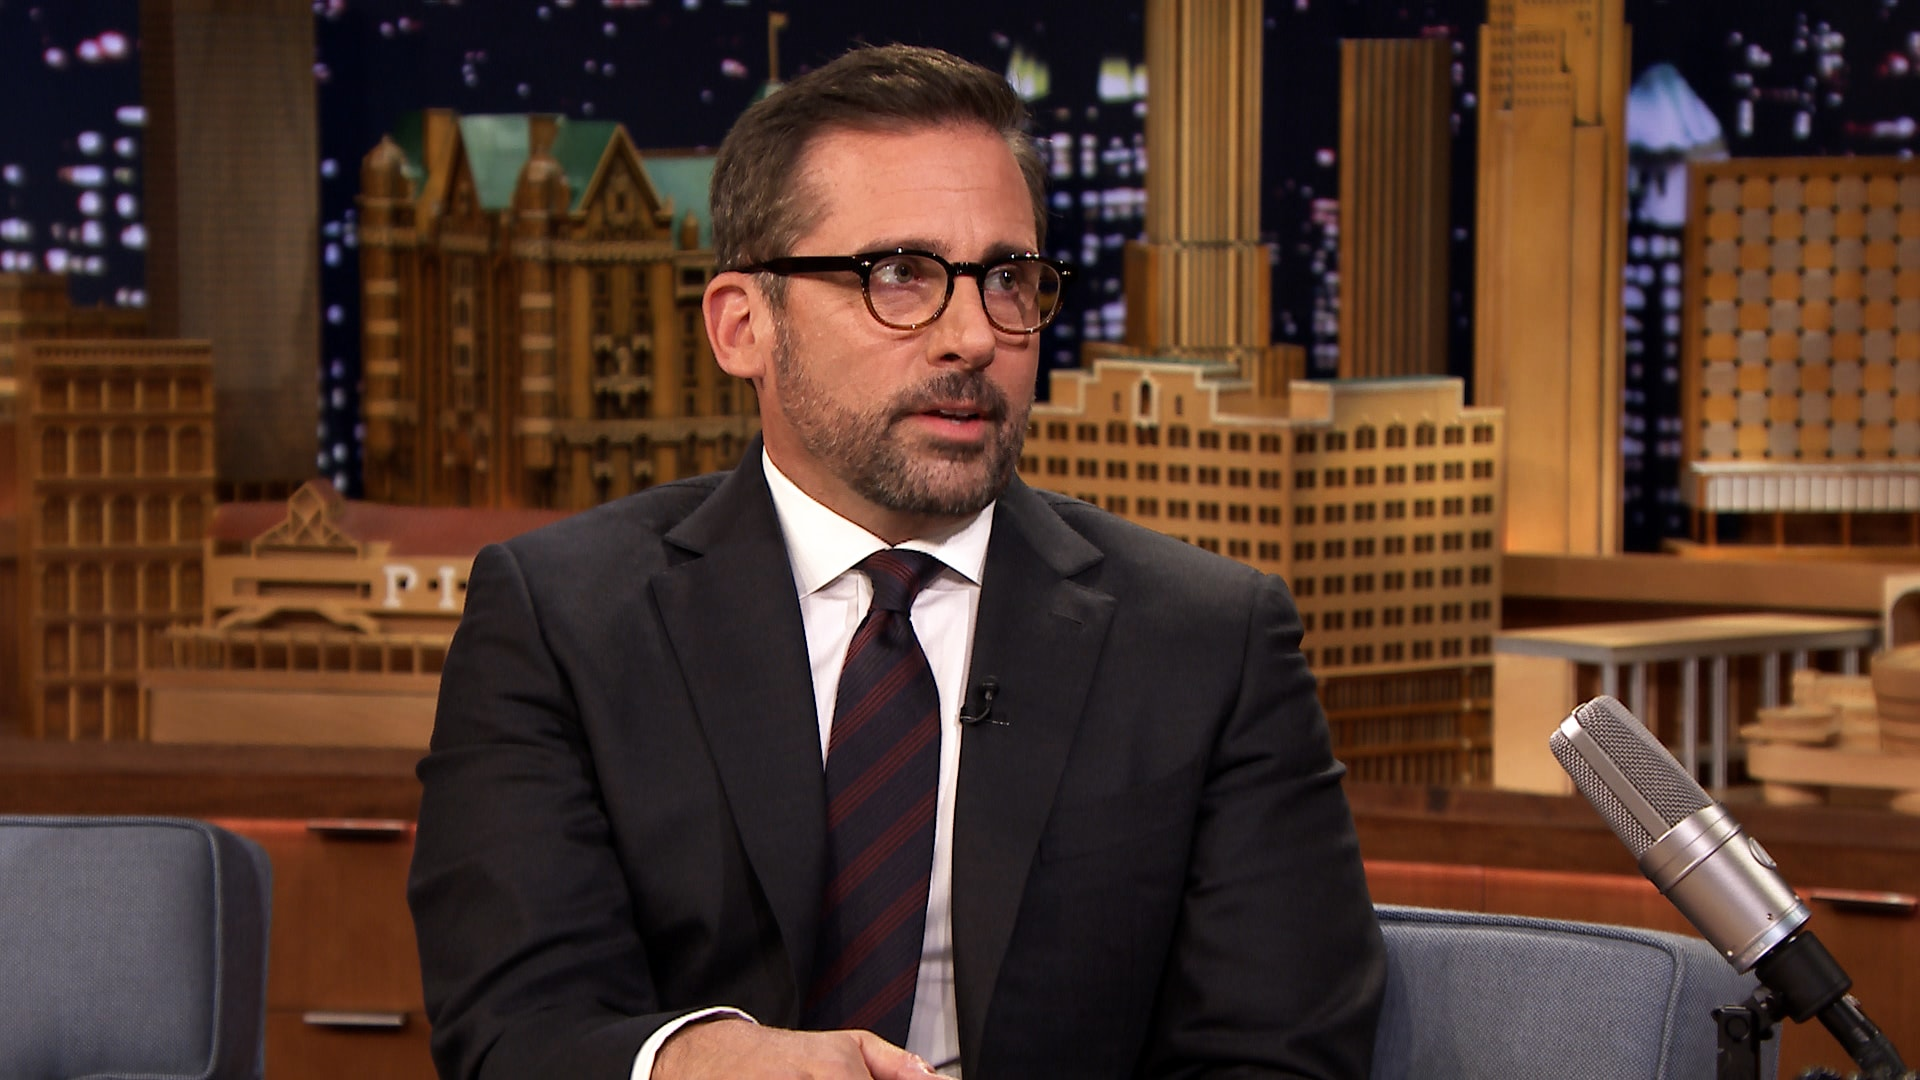 Steve Carell Full hd wallpapers